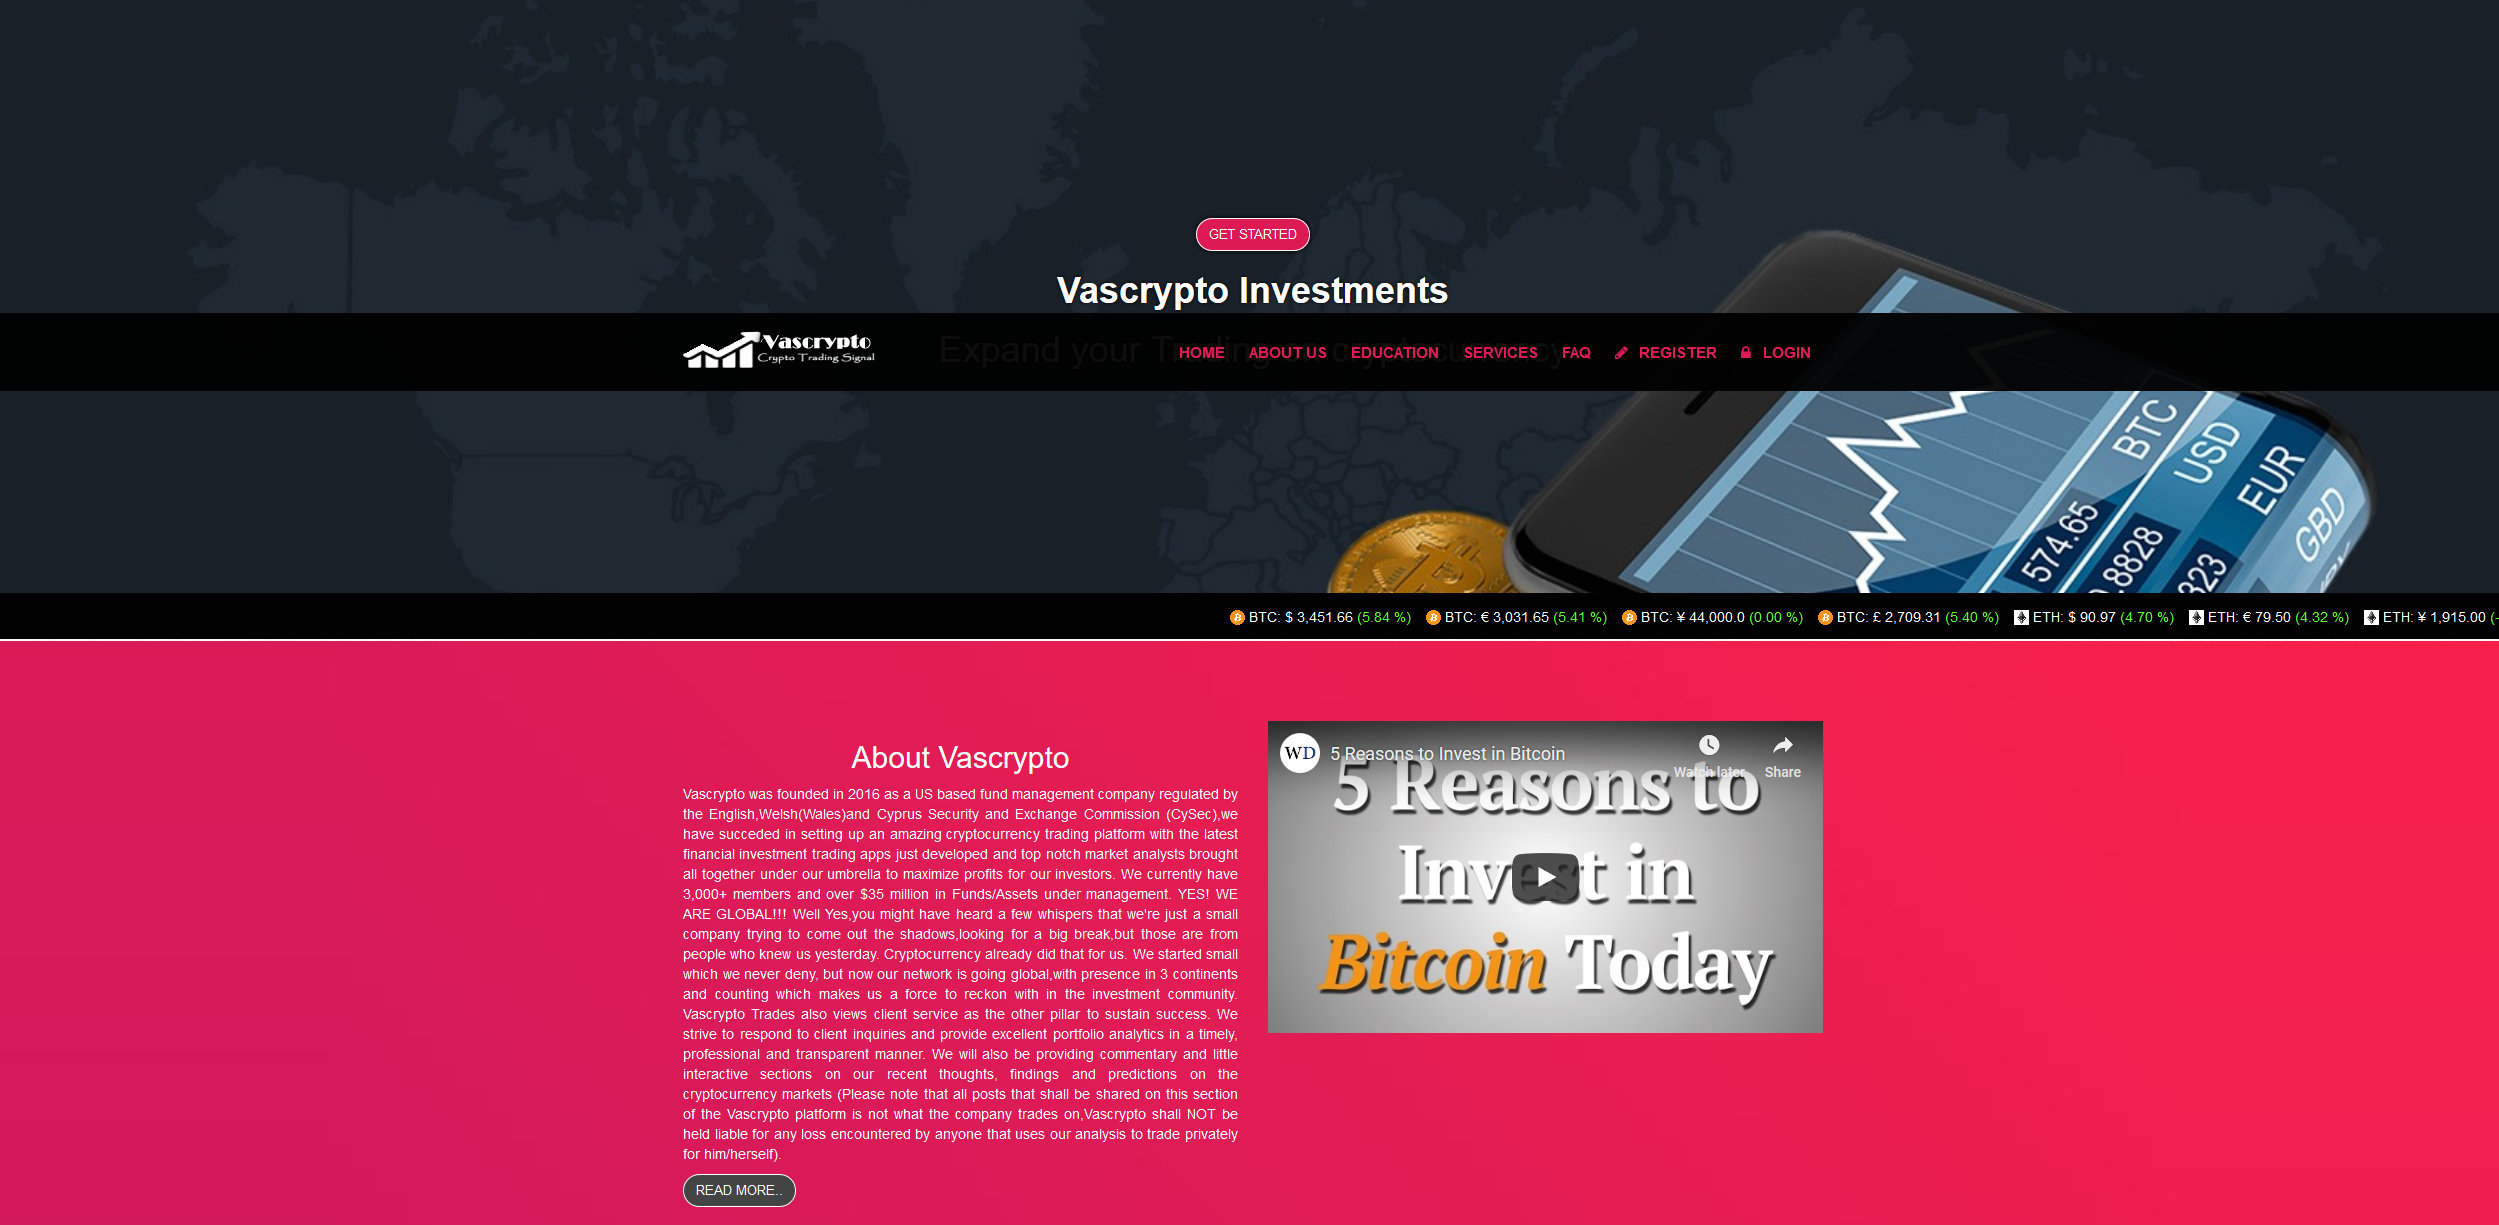 vascrypto investments review